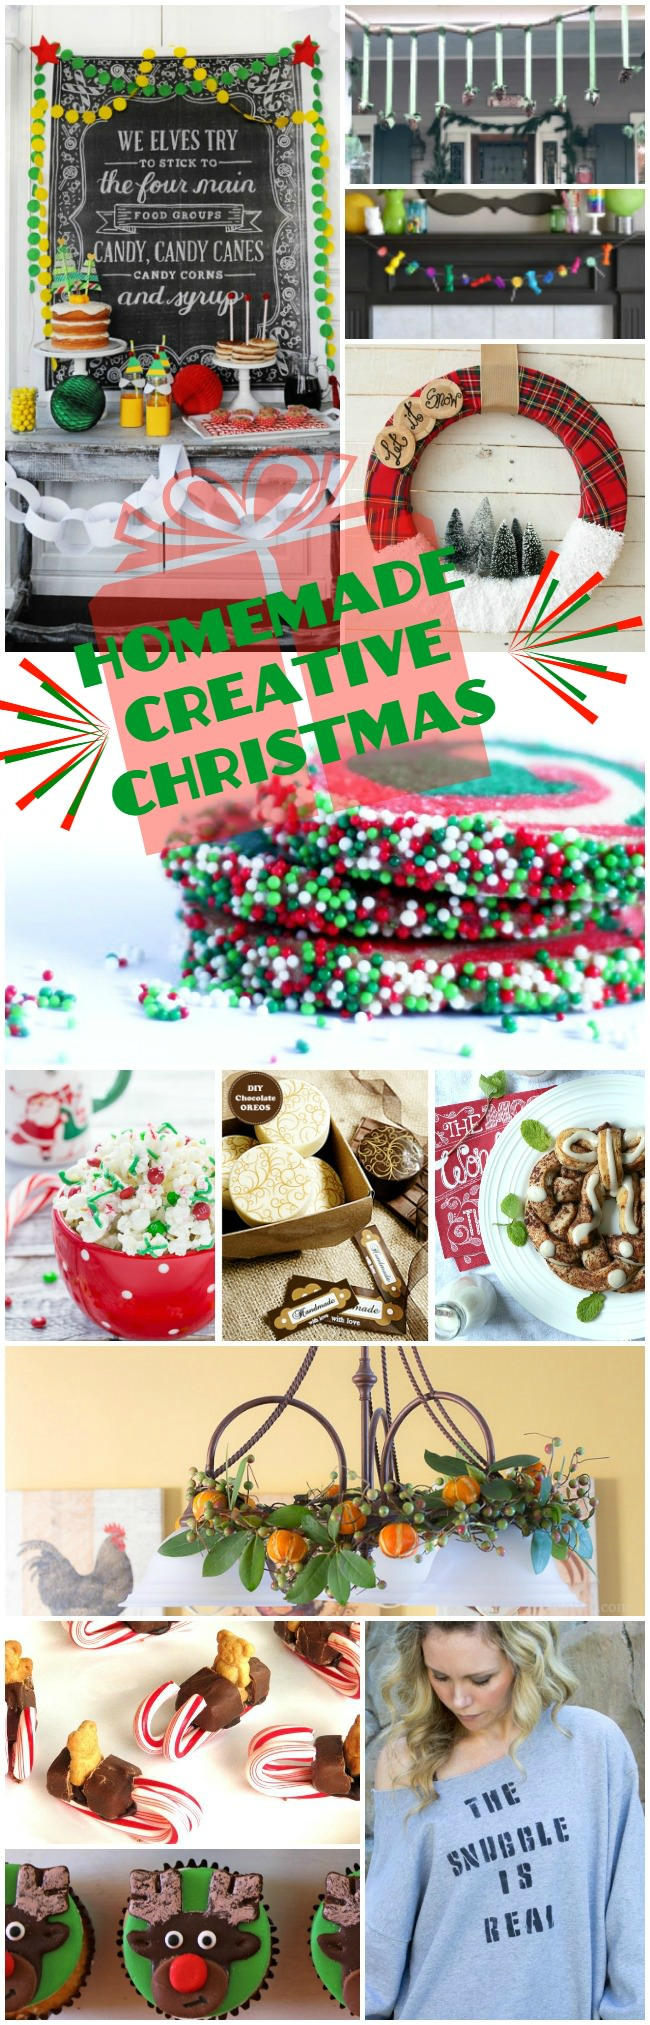 It's a Homemade Creative Christmas Celebration. Enjoy 12 fun ways to eat and craft your way through the holidays!